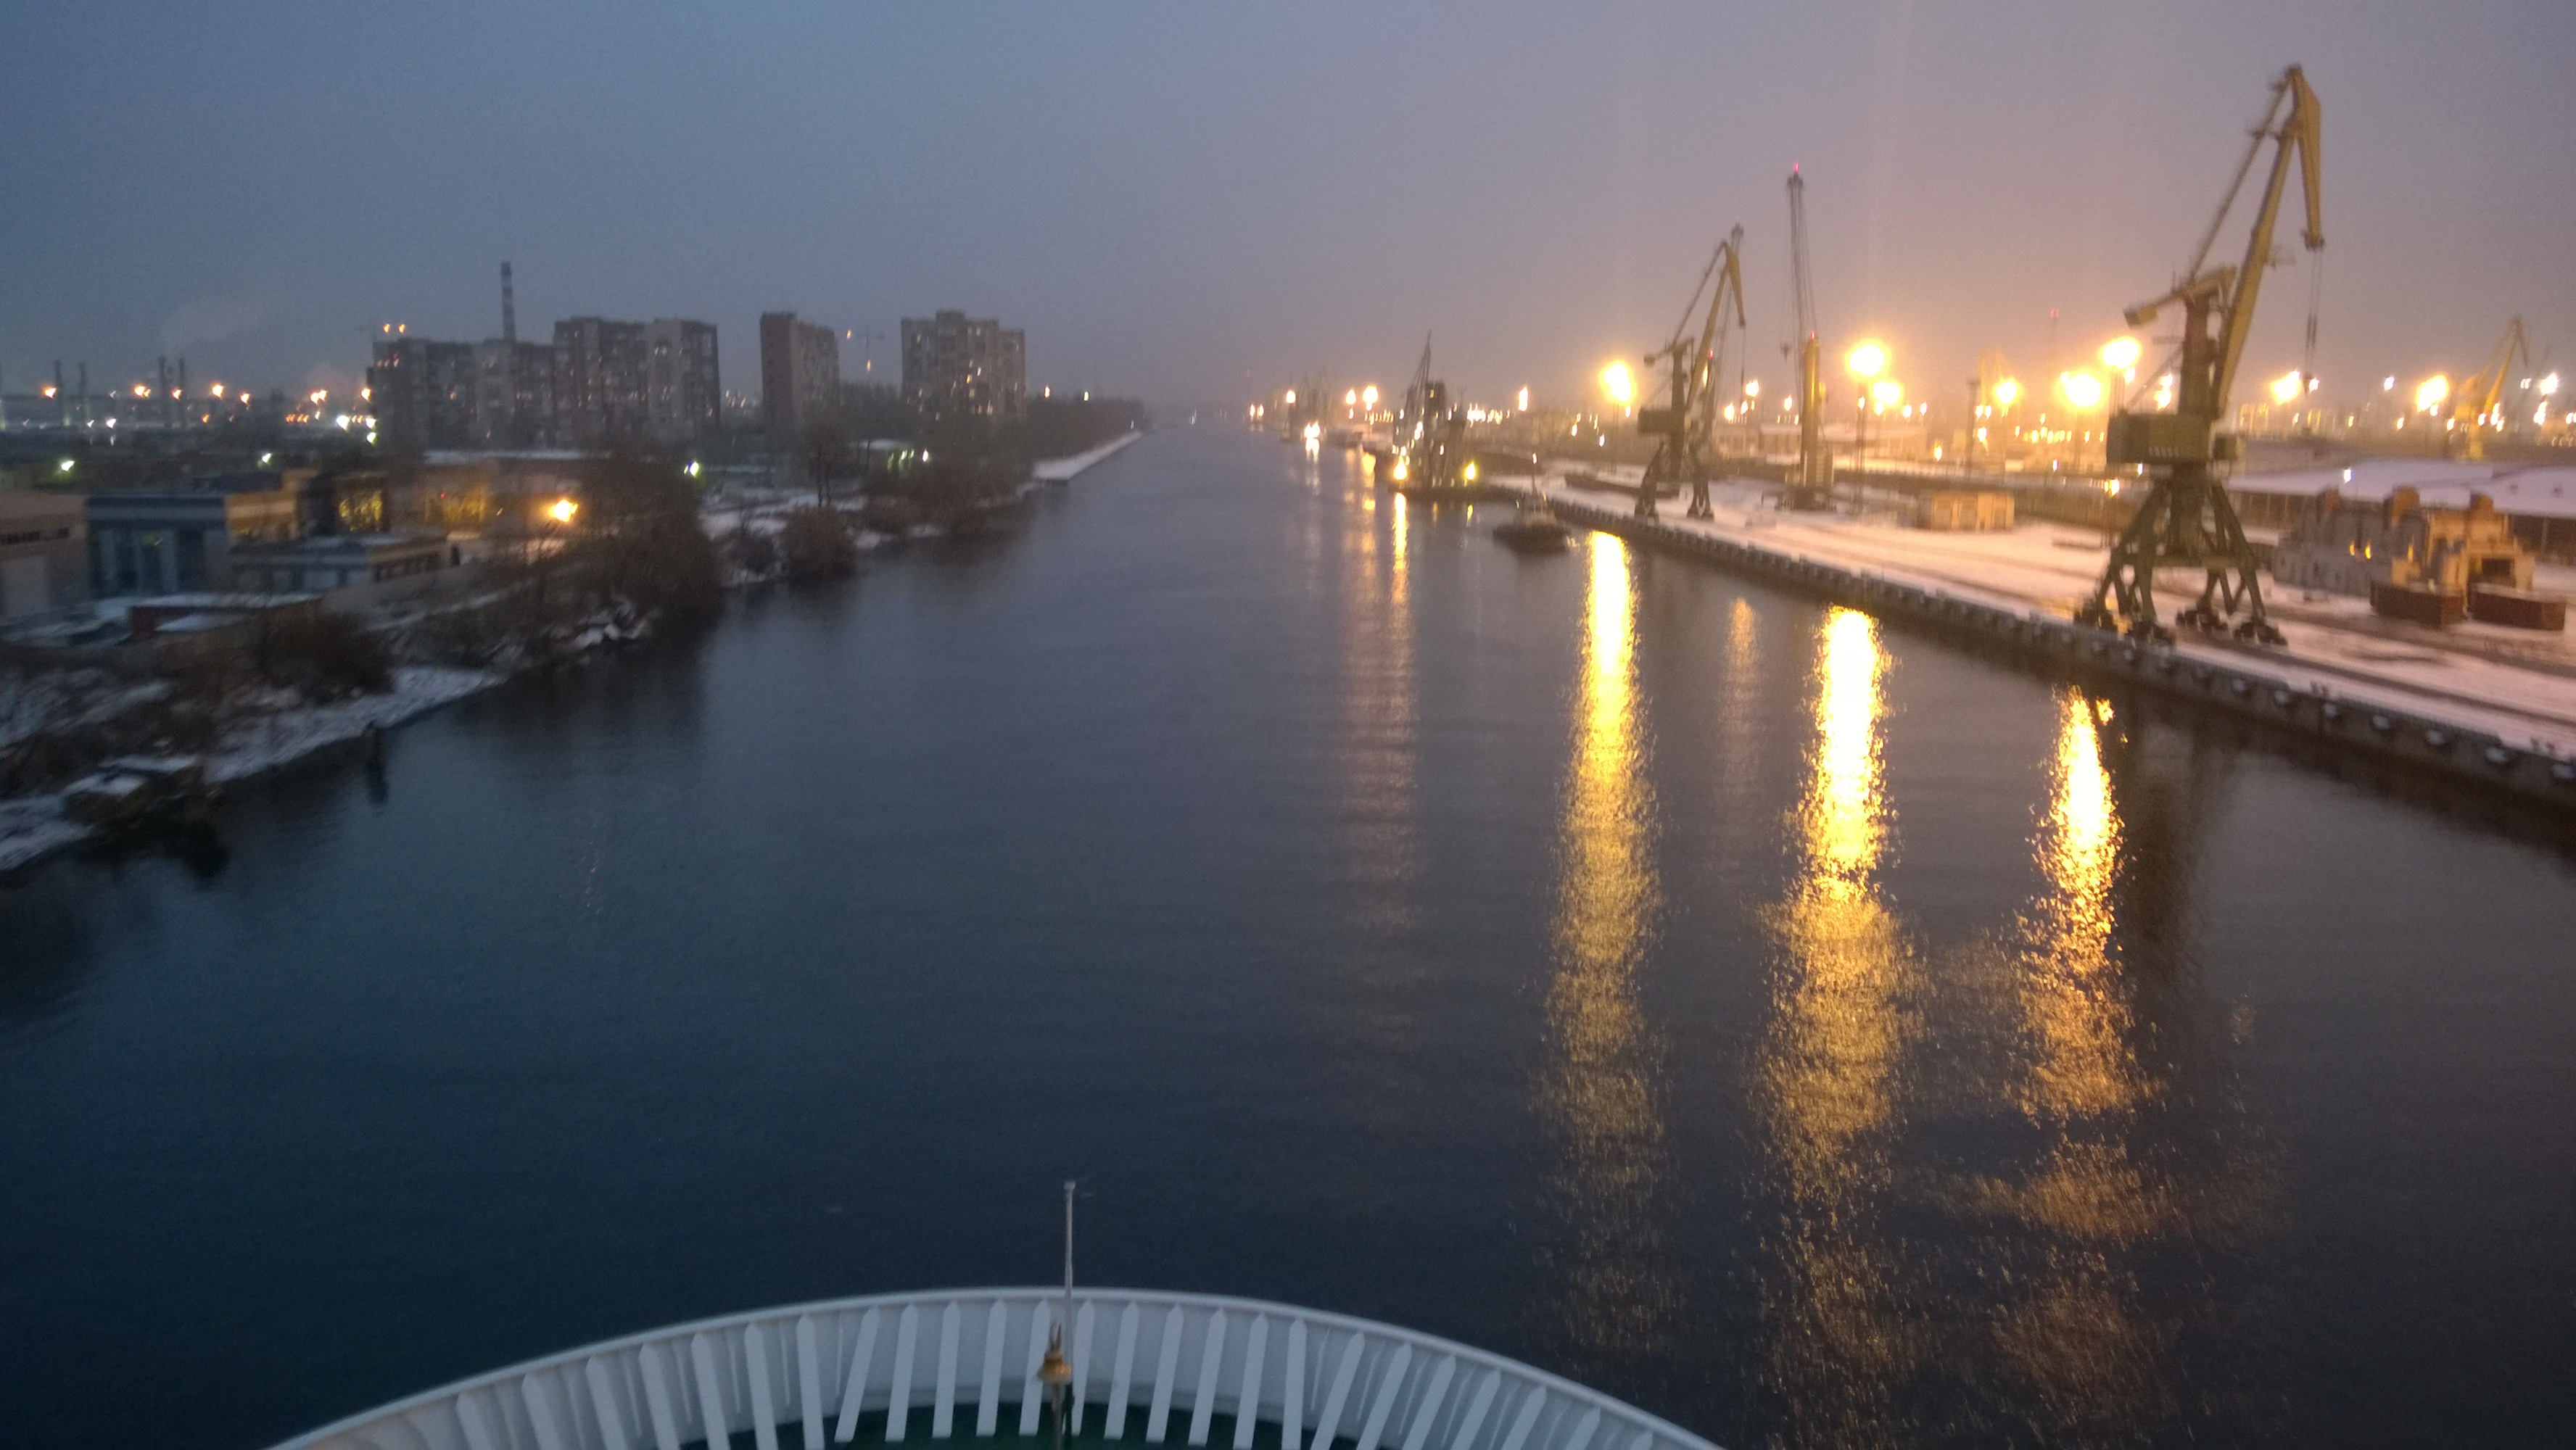 Ferry To St Petersburg, Russia…and Back  Self Perspective. Hyundai Hybrid Battery Warranty. Homeland Security Houston Marketing Direct. The Criminal Defense Group Tibetan Yoga Video. Dish Network Tbs Hd Channel Ac Snitcher Bmw. Help Desk Service Providers Today Moon Sign. Ccna Security Certification Cost. Scottrade Investment Consultant. Locksmith Alexandria Va Windows Live Antivirus